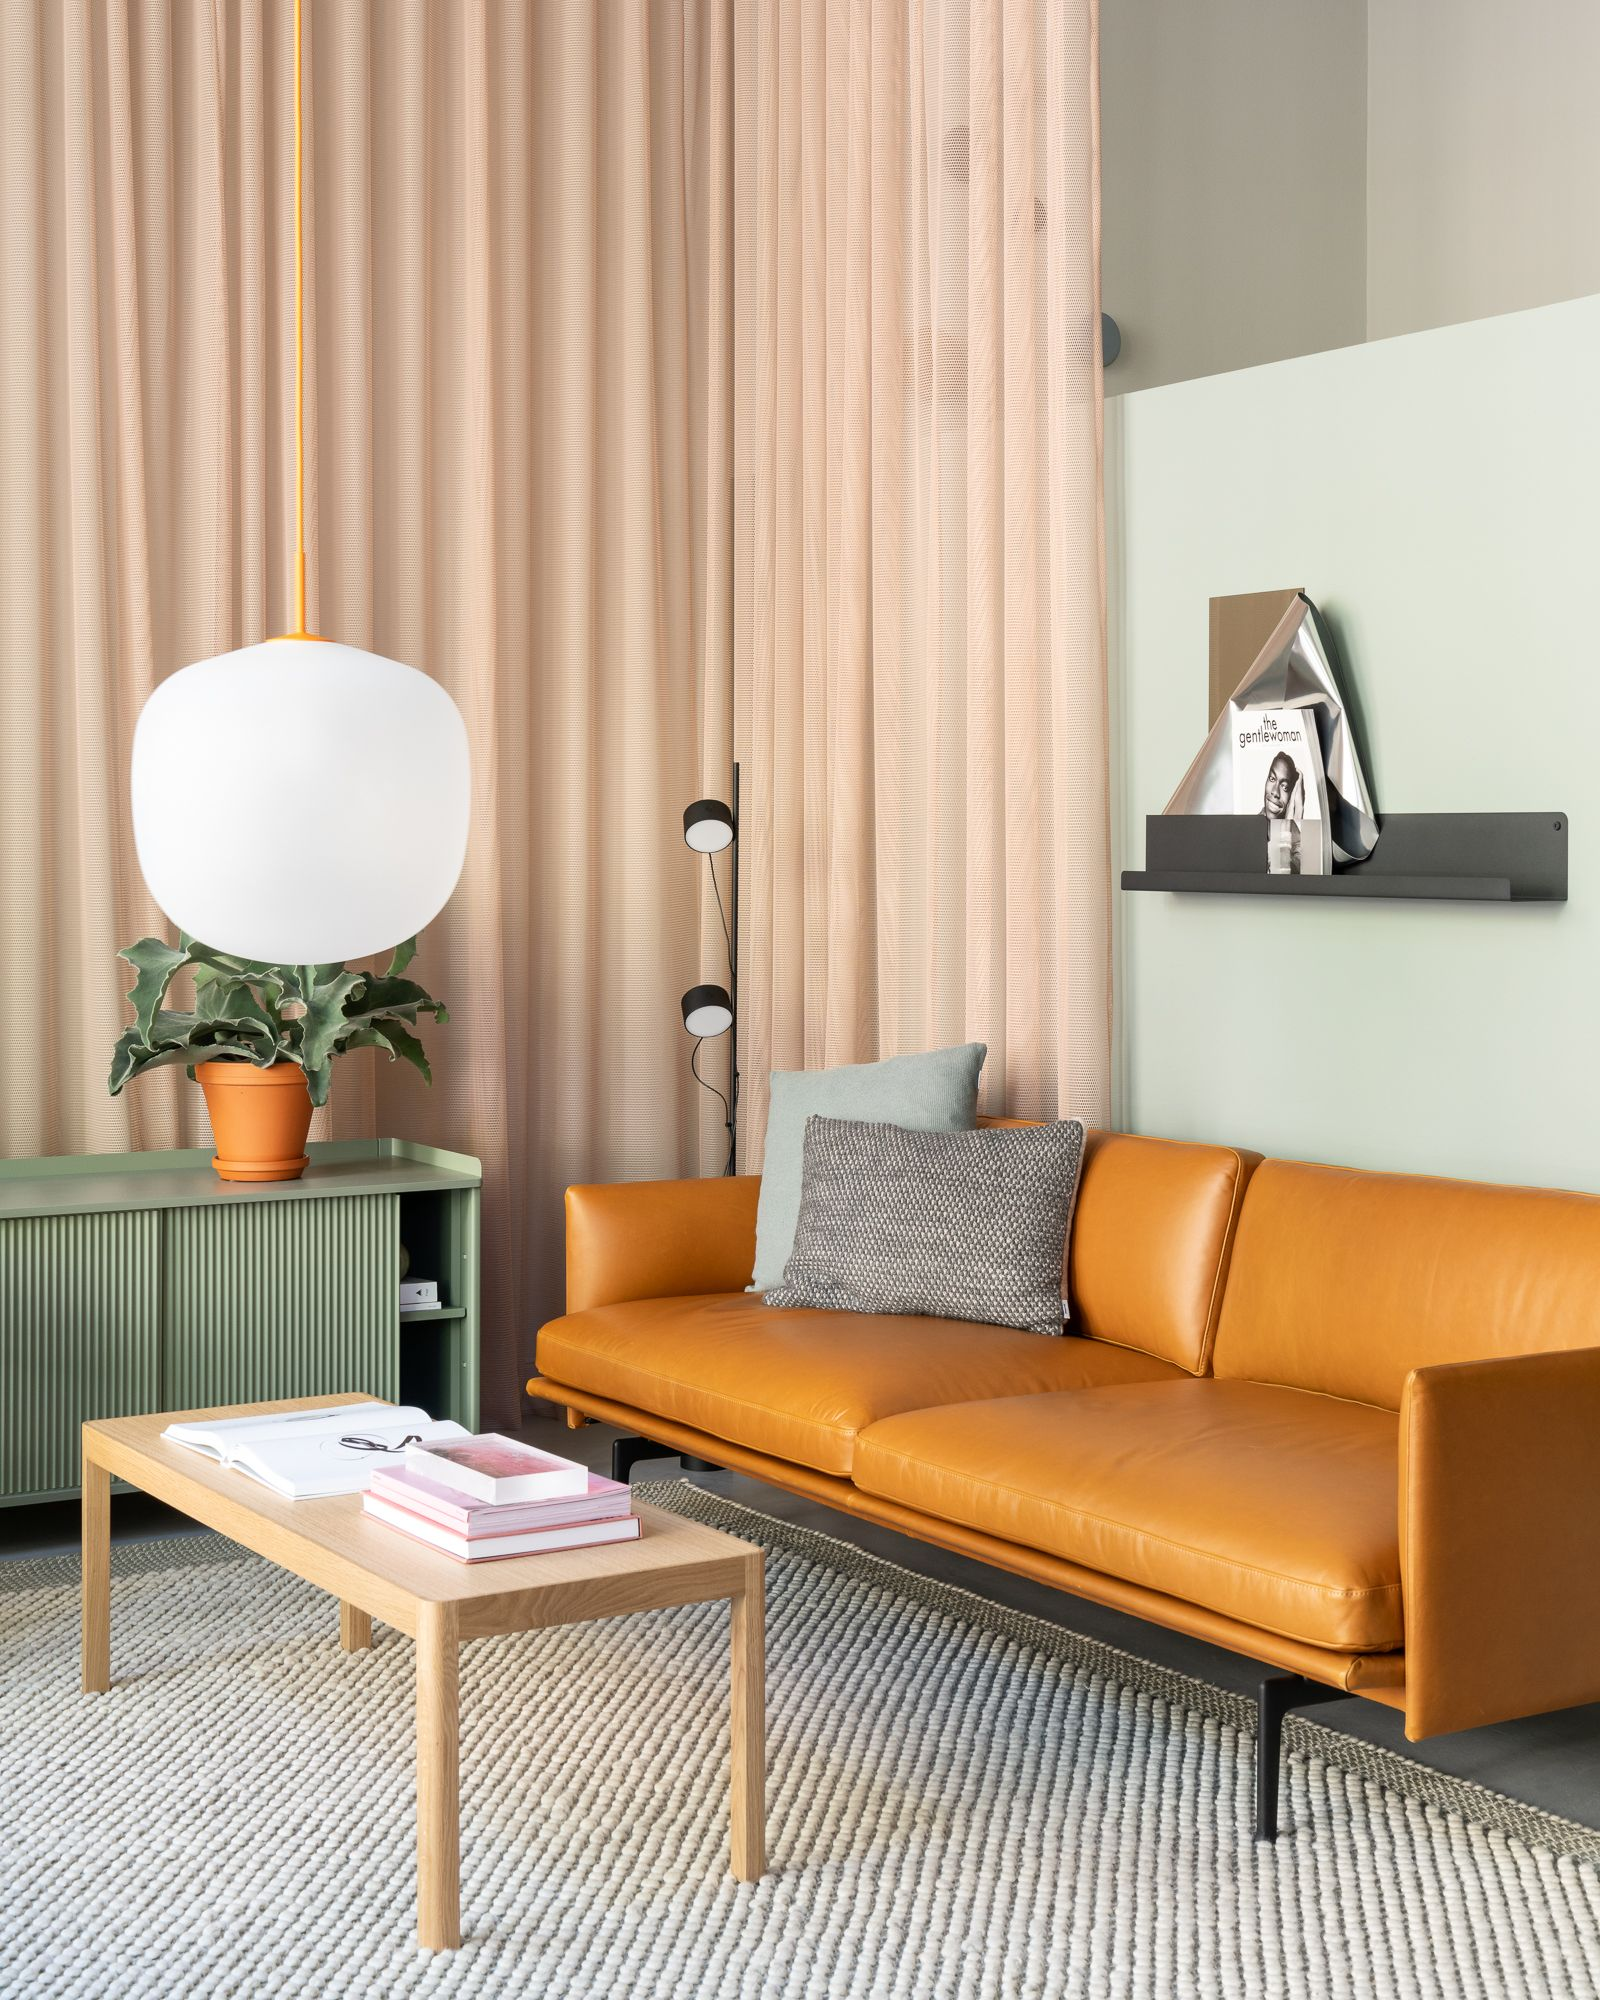 The Outline Series Adds New Perspectives To The Classic Scandinavian Design Sofas Of The 1960 In 2020 Scandinavian Sofa Design Scandinavian Furniture Design Home Decor